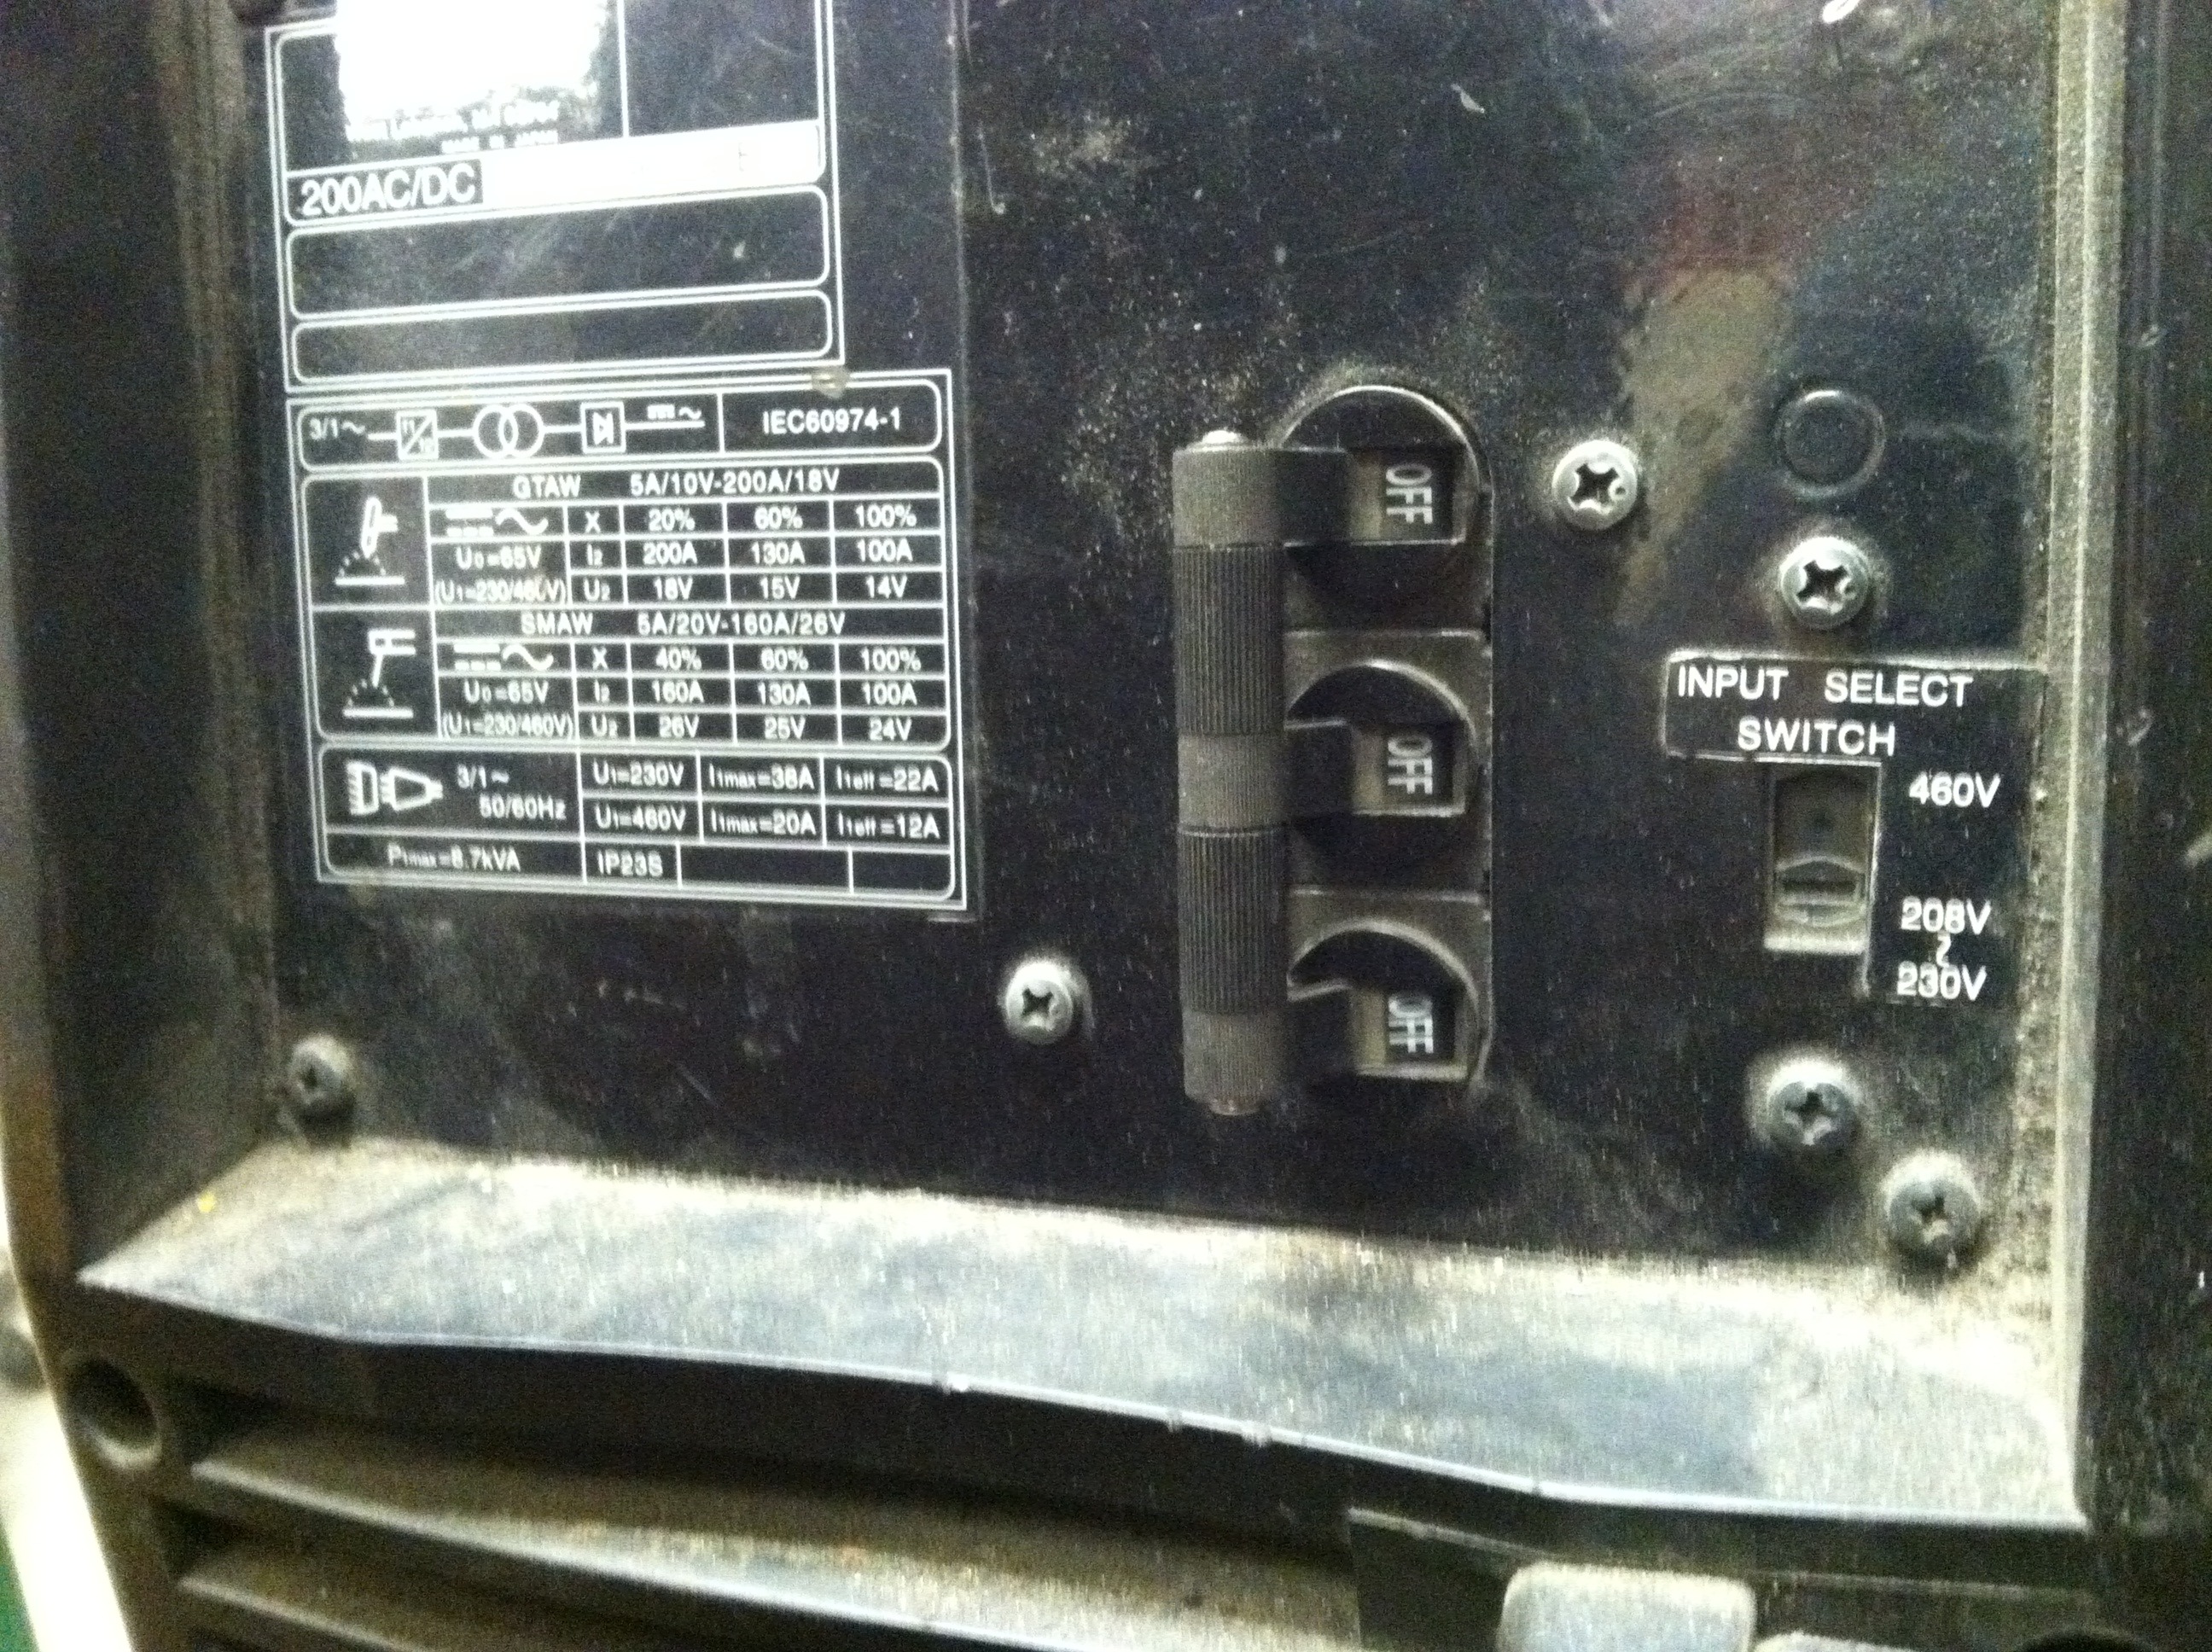 Picture of Plugging in and Turning on the Machine